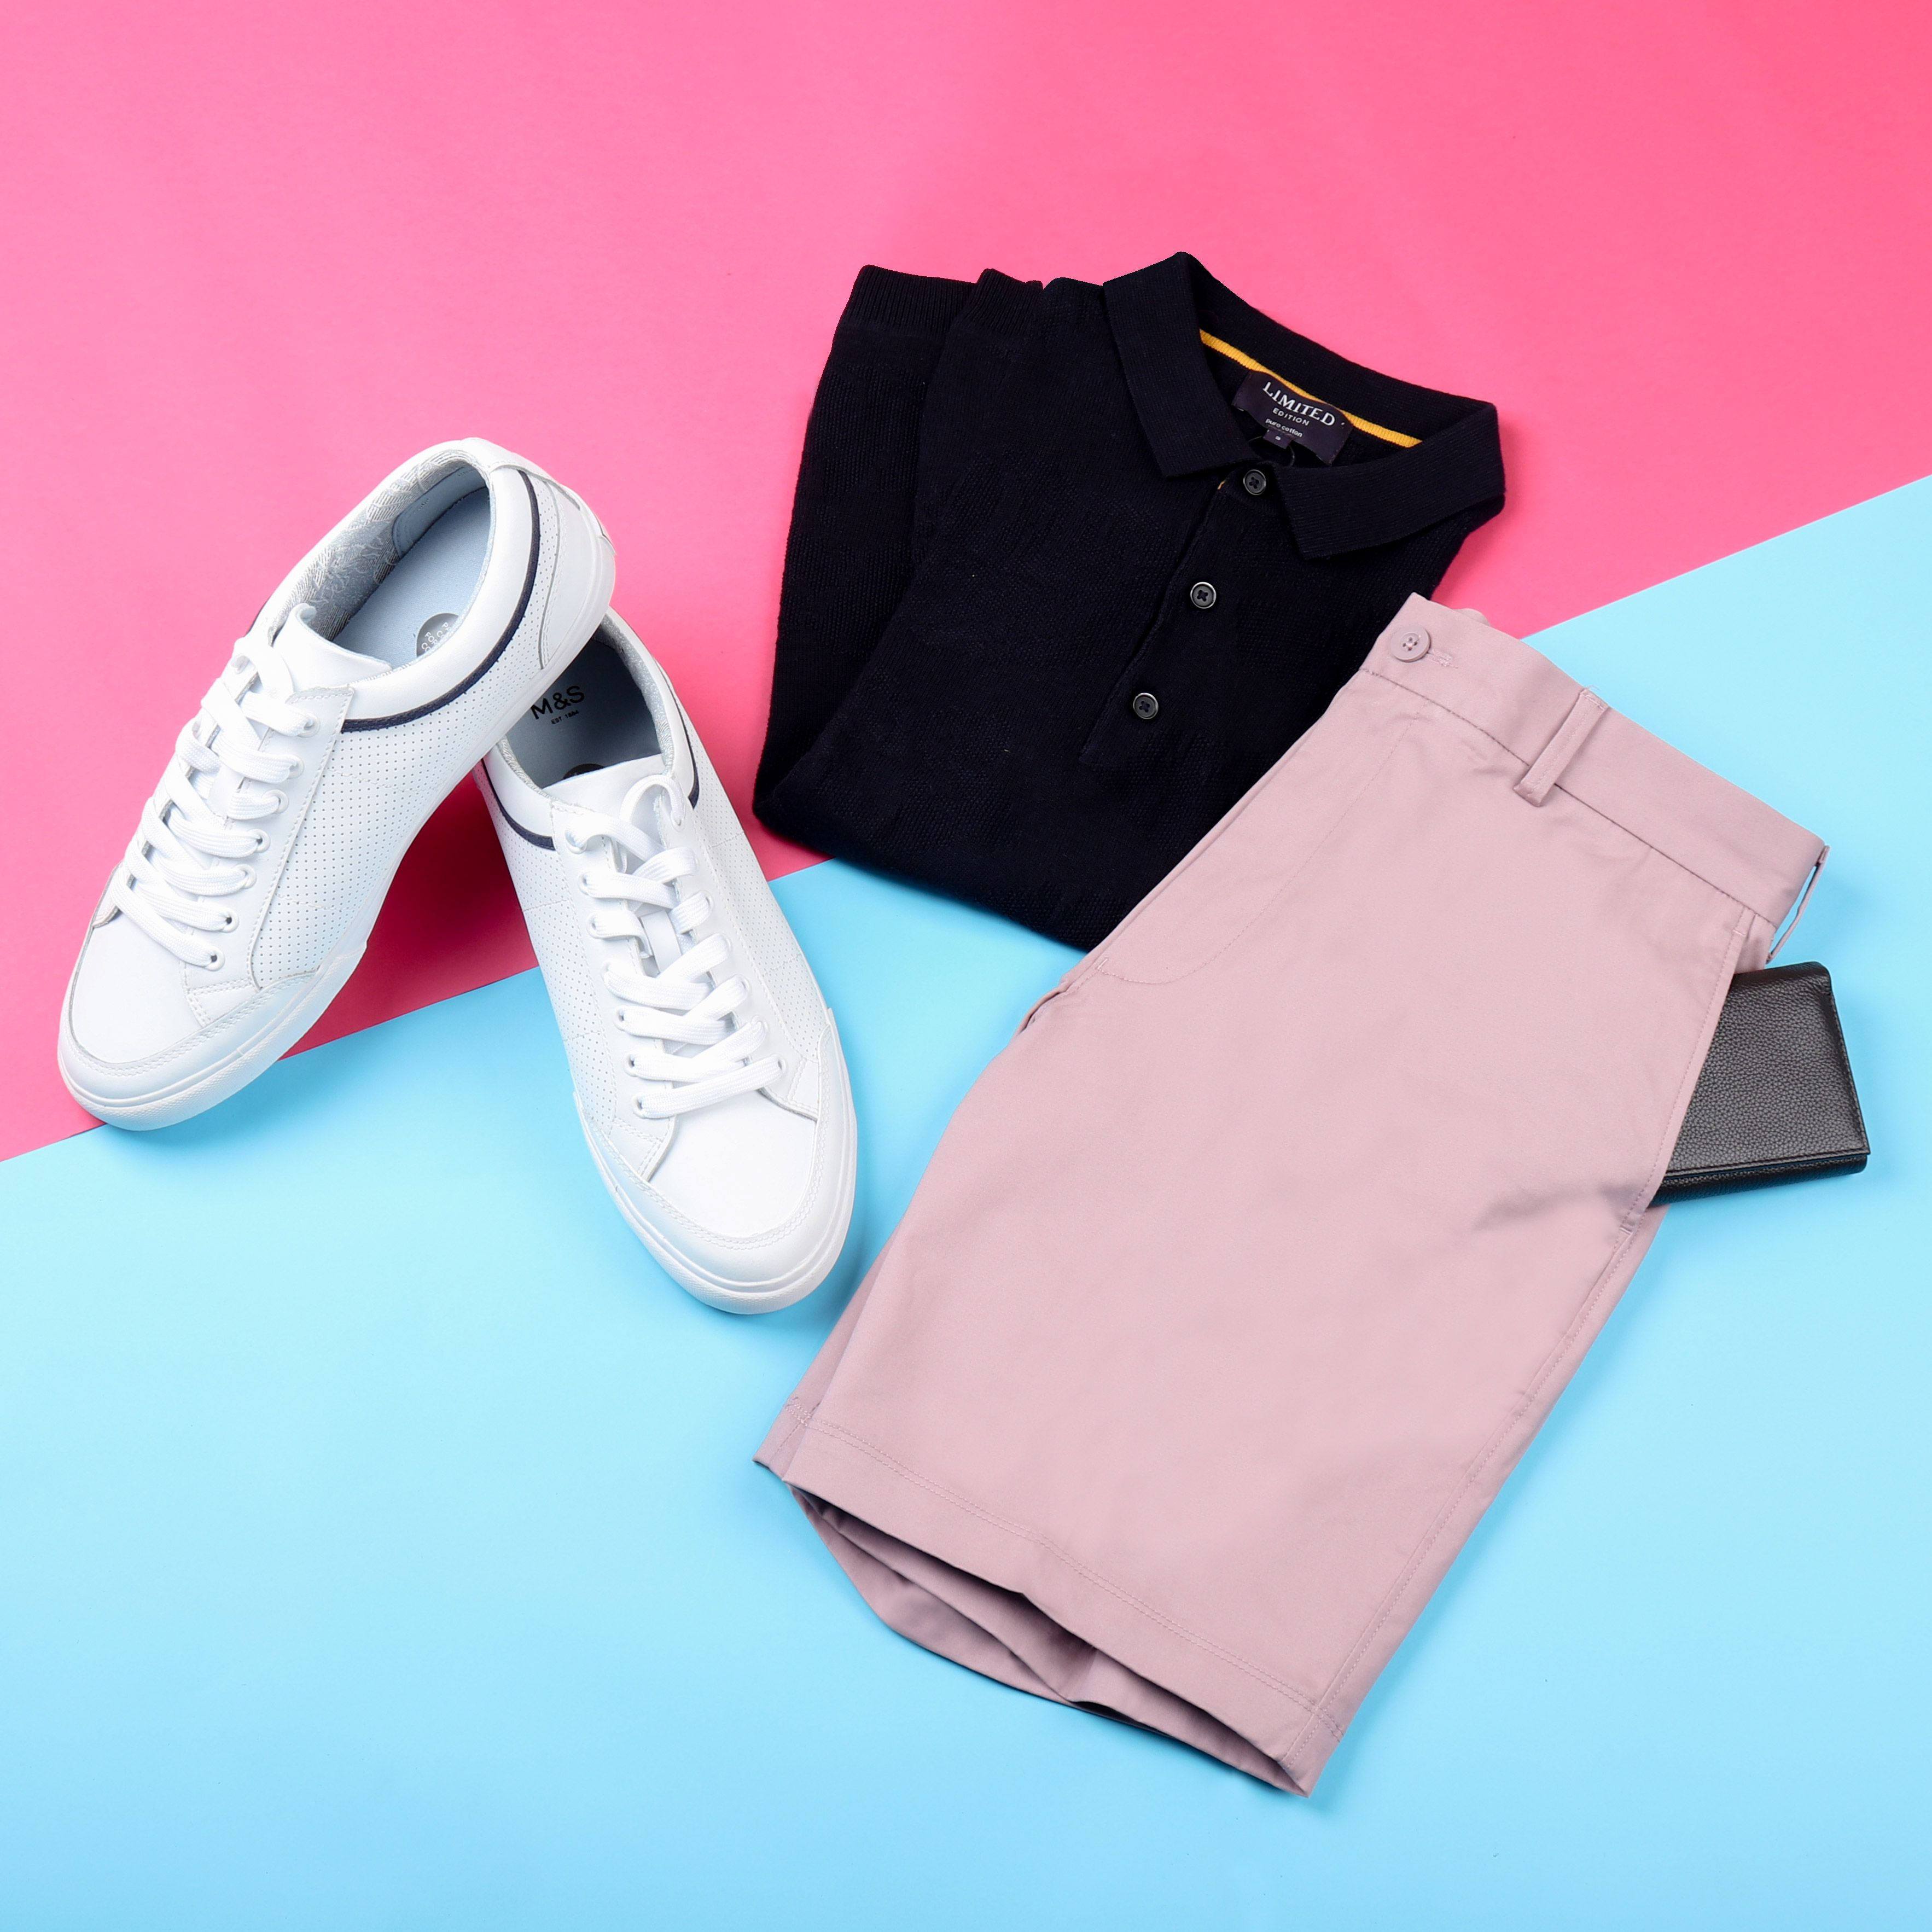 2a5129e0ec2 Top  Pure Cotton Leaf Design Knitted Slim Fit Polo Shorts  Cotton Rich  Chino Shorts with Stretch Wallet  Leather Slim Bi Fold Card Wallet with  Cardsafe™ ...